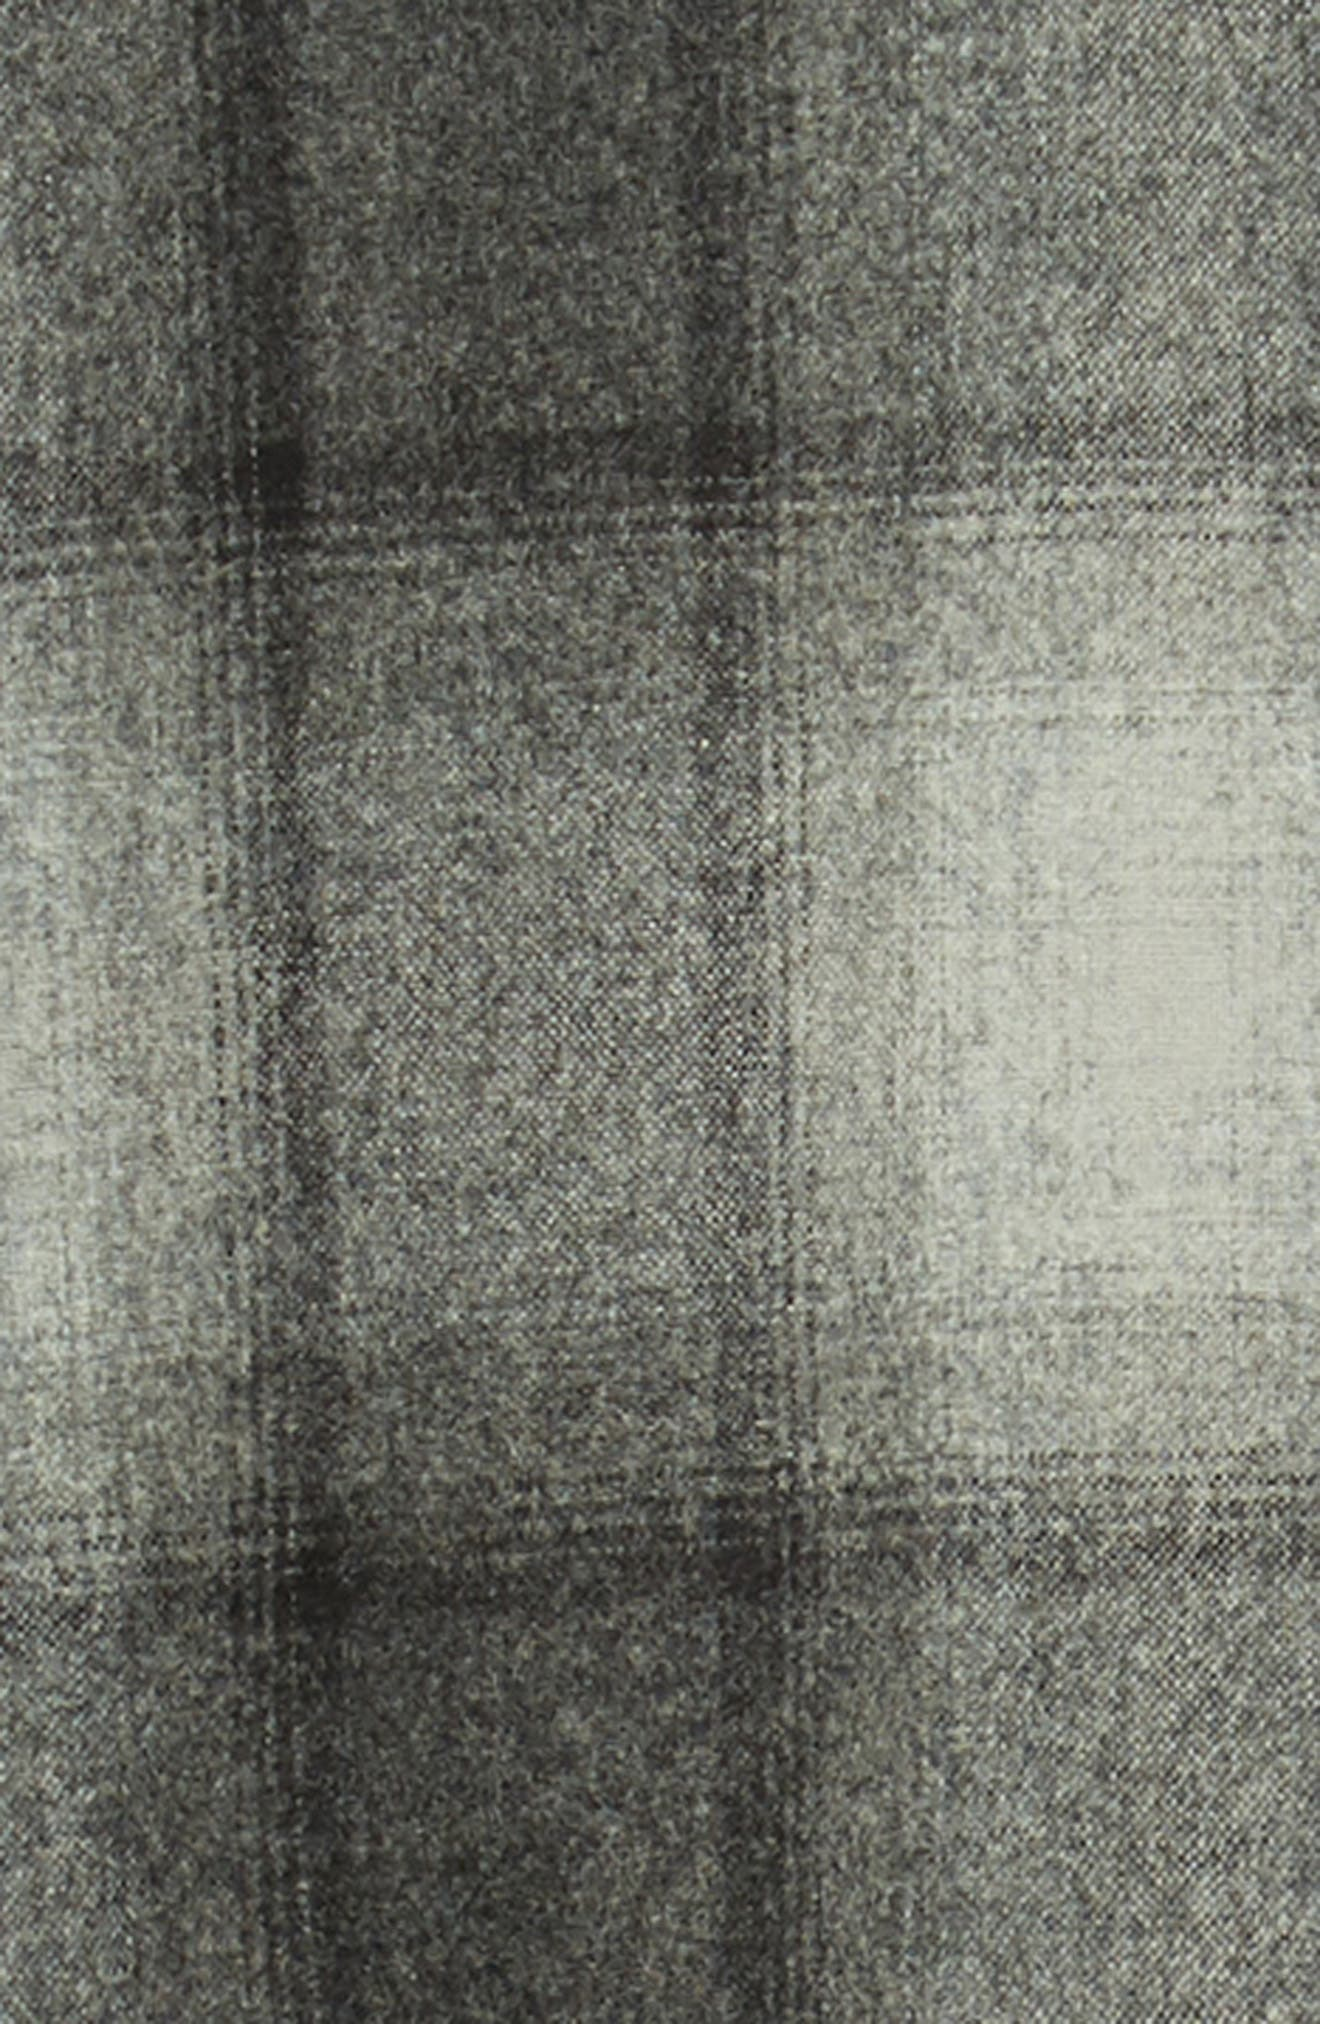 Lodge Wool Flannel Shirt,                             Alternate thumbnail 6, color,                             BLACK/ GREY MIX OMBRE